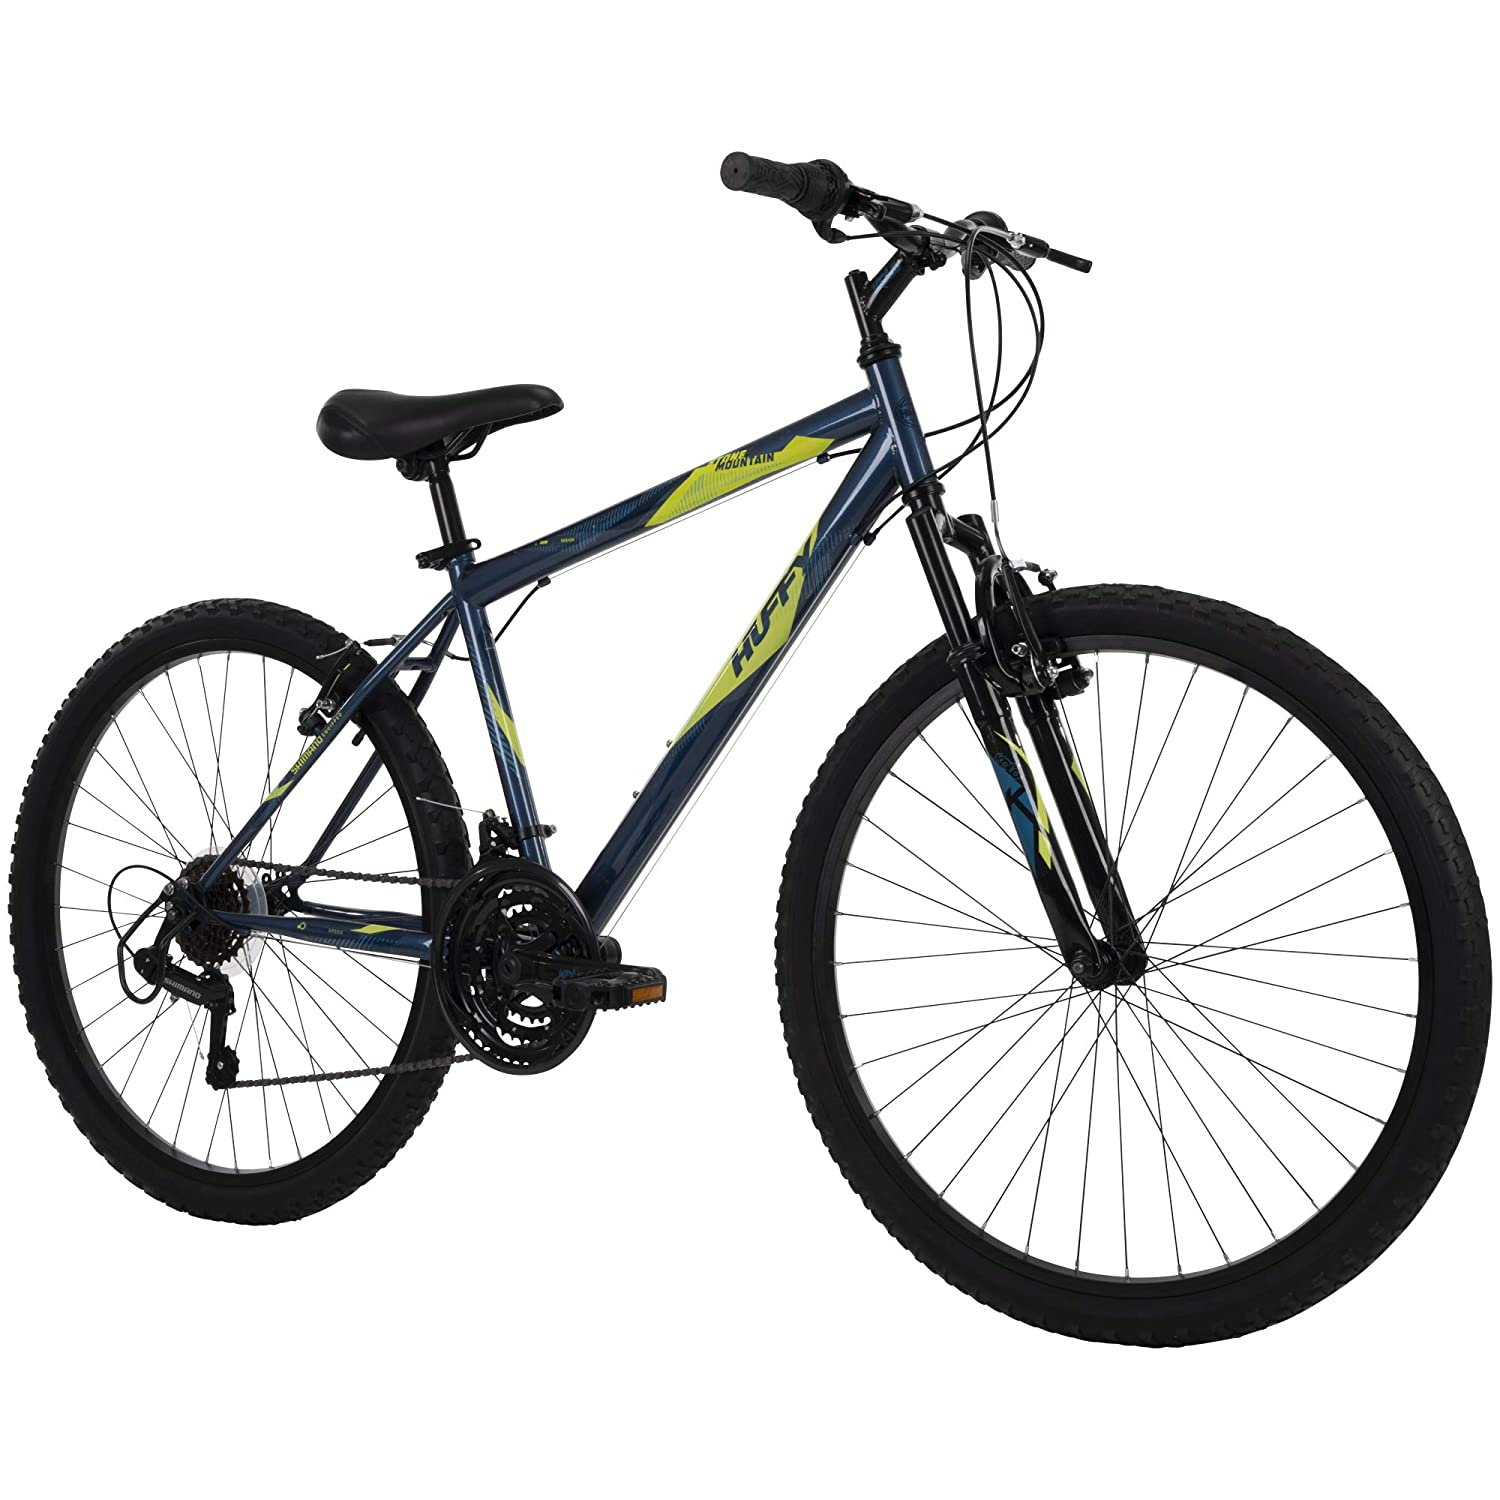 Review of Huffy Hardtail Mountain Bike, Stone Mountain 24 inch 21-Speed, Lightweight, Dark Blue